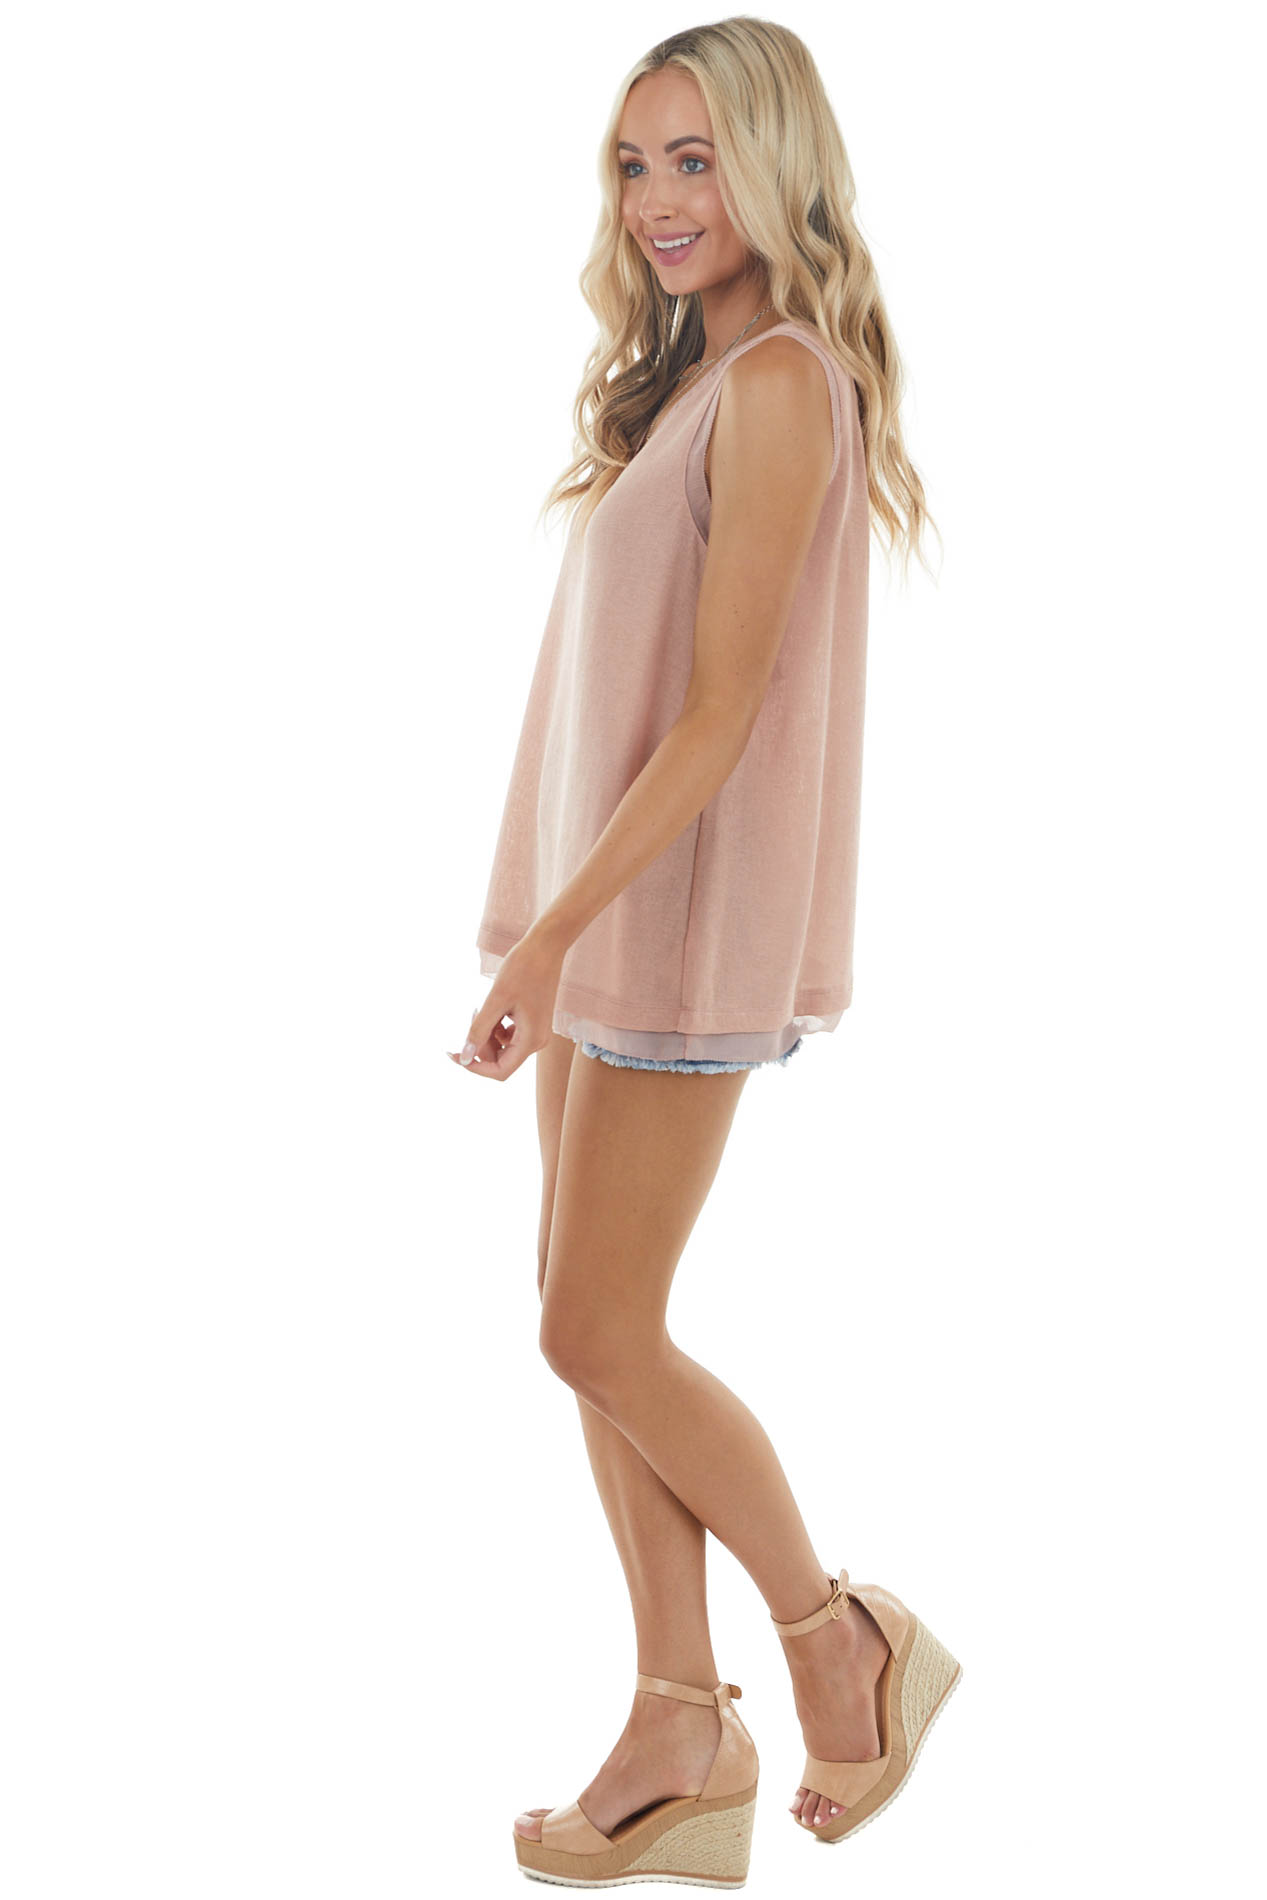 Dusty Blush Knit Tank Top with Sheer Trim and Back Strap